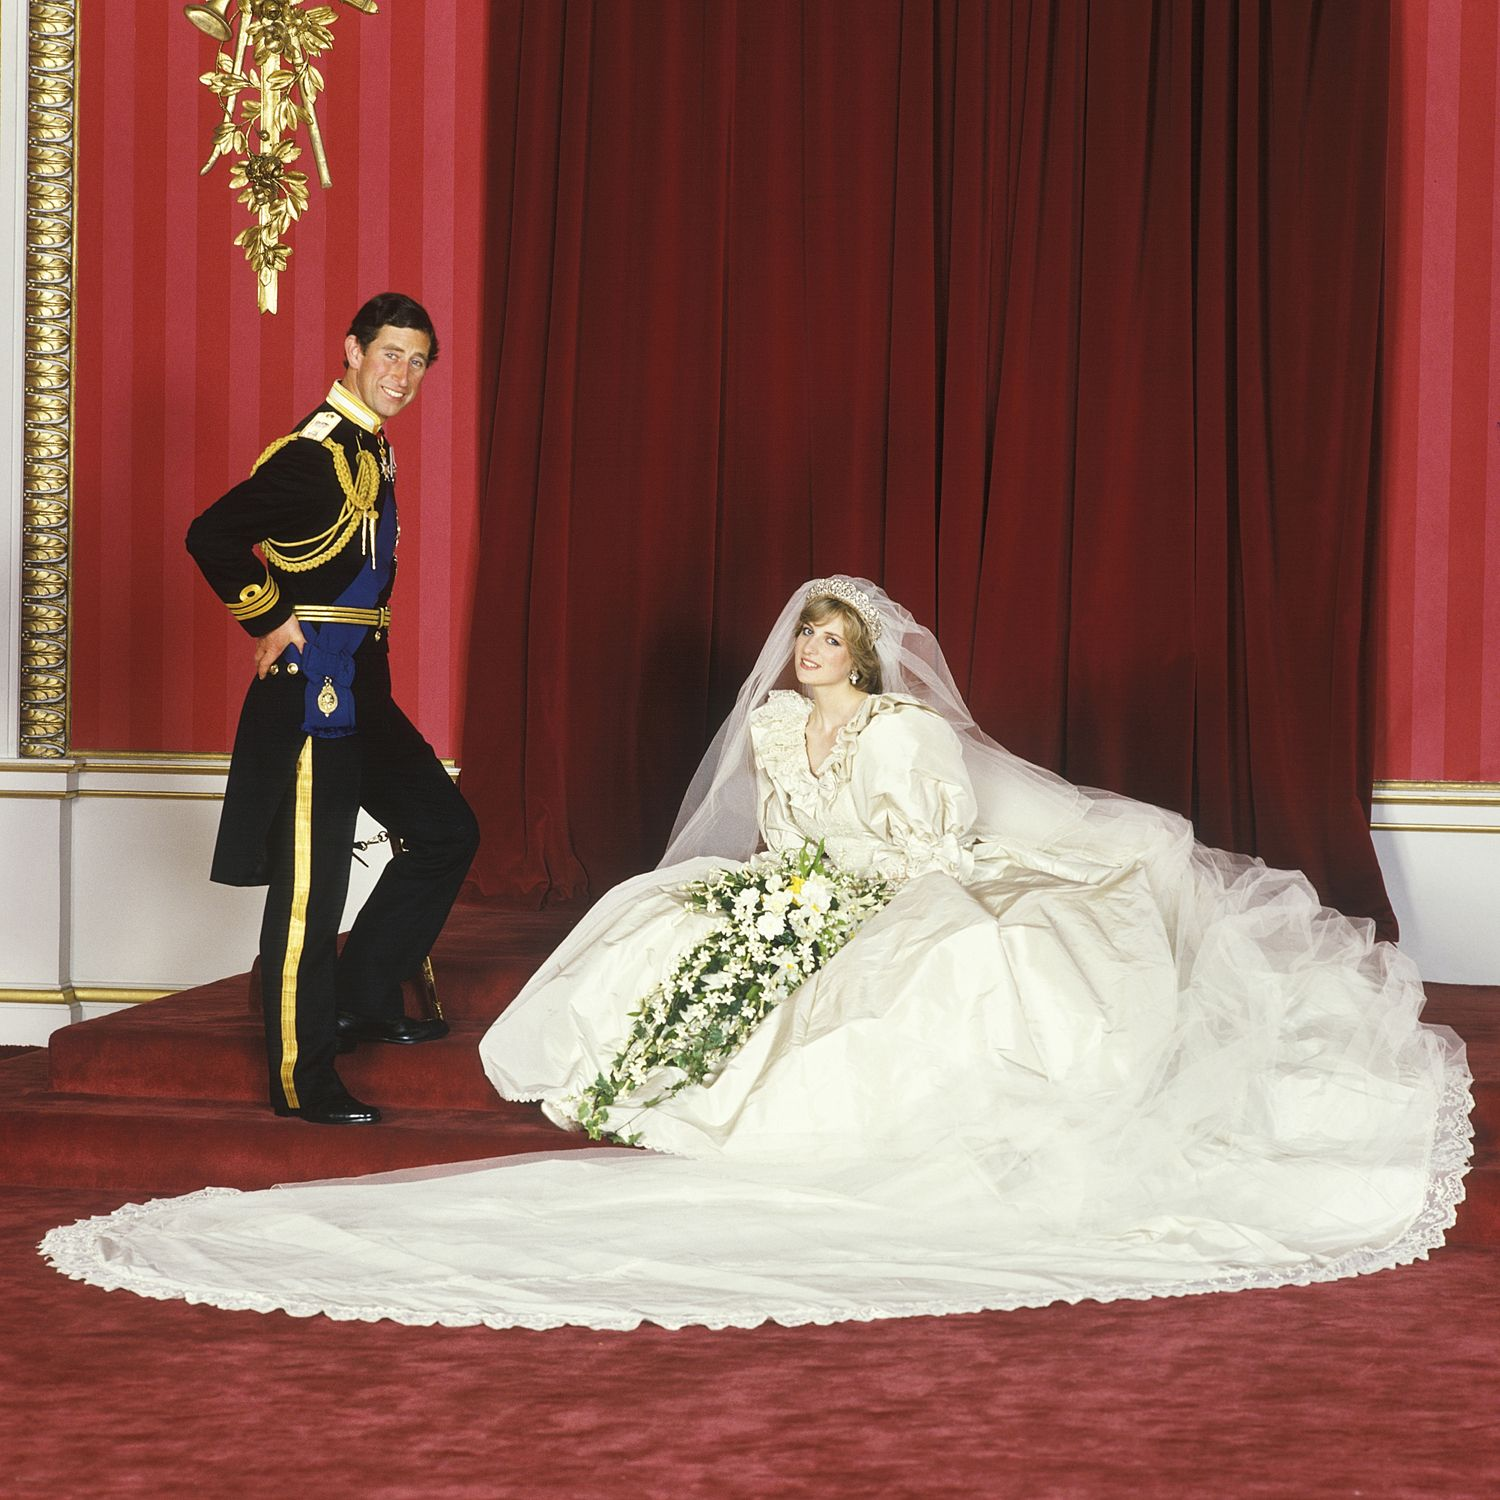 Most expensive wedding dress in the world  The most expensive wedding dress in the world was designed by David